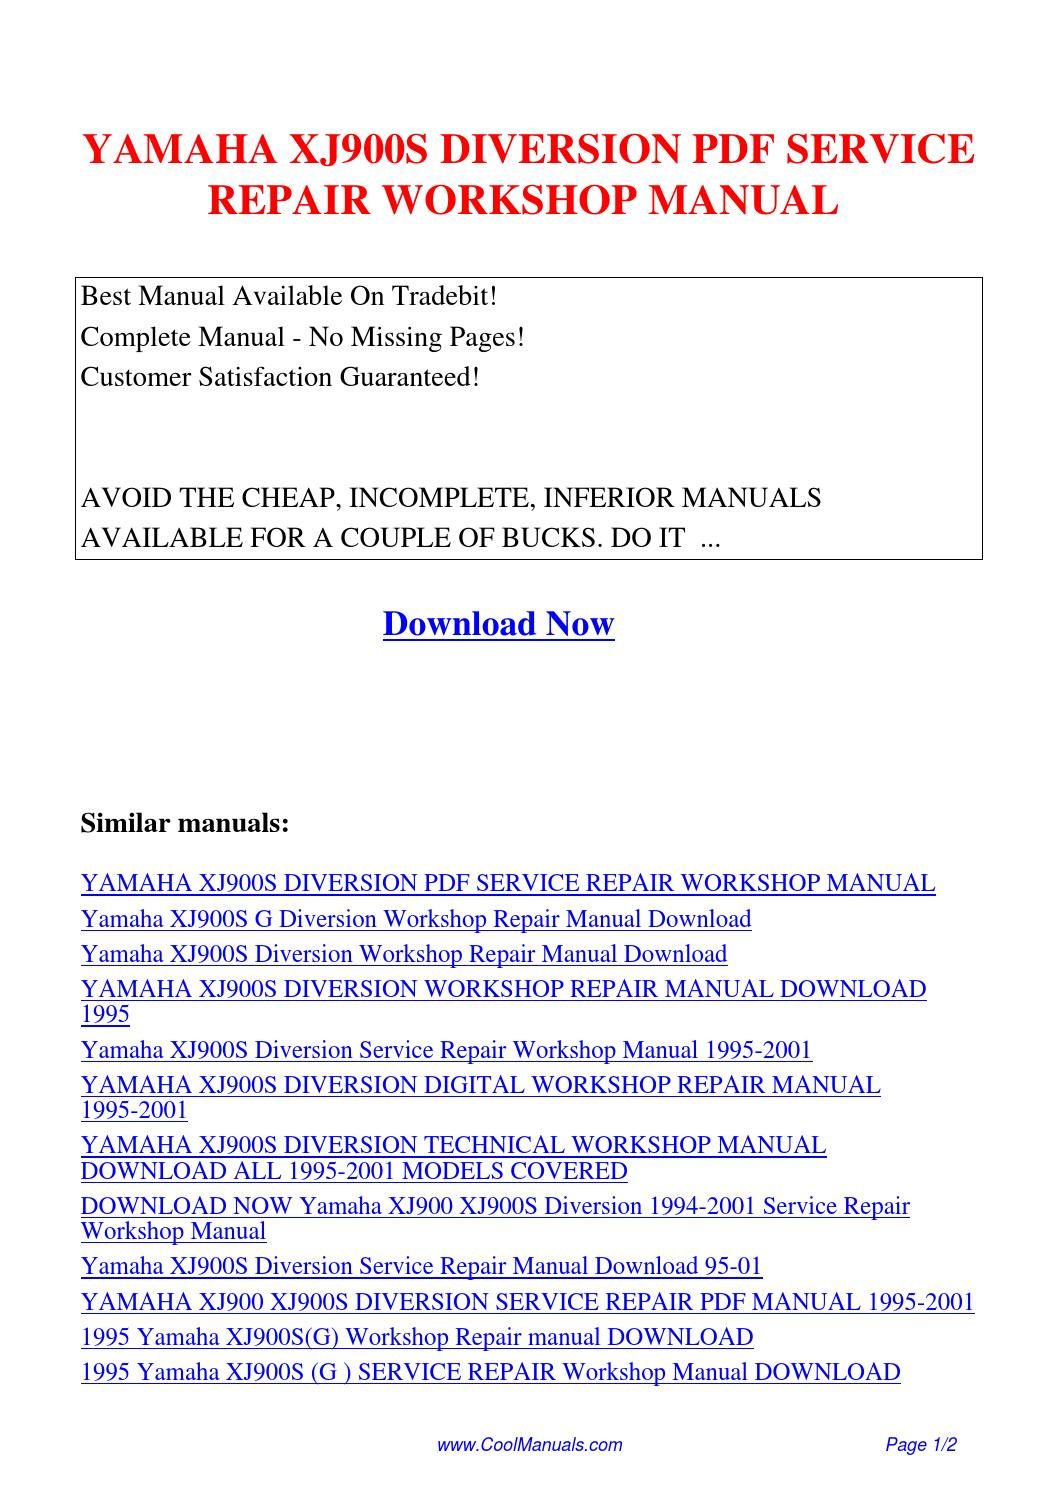 yamaha xj900s diversion workshop repair manual download all 1995 2001 models covered